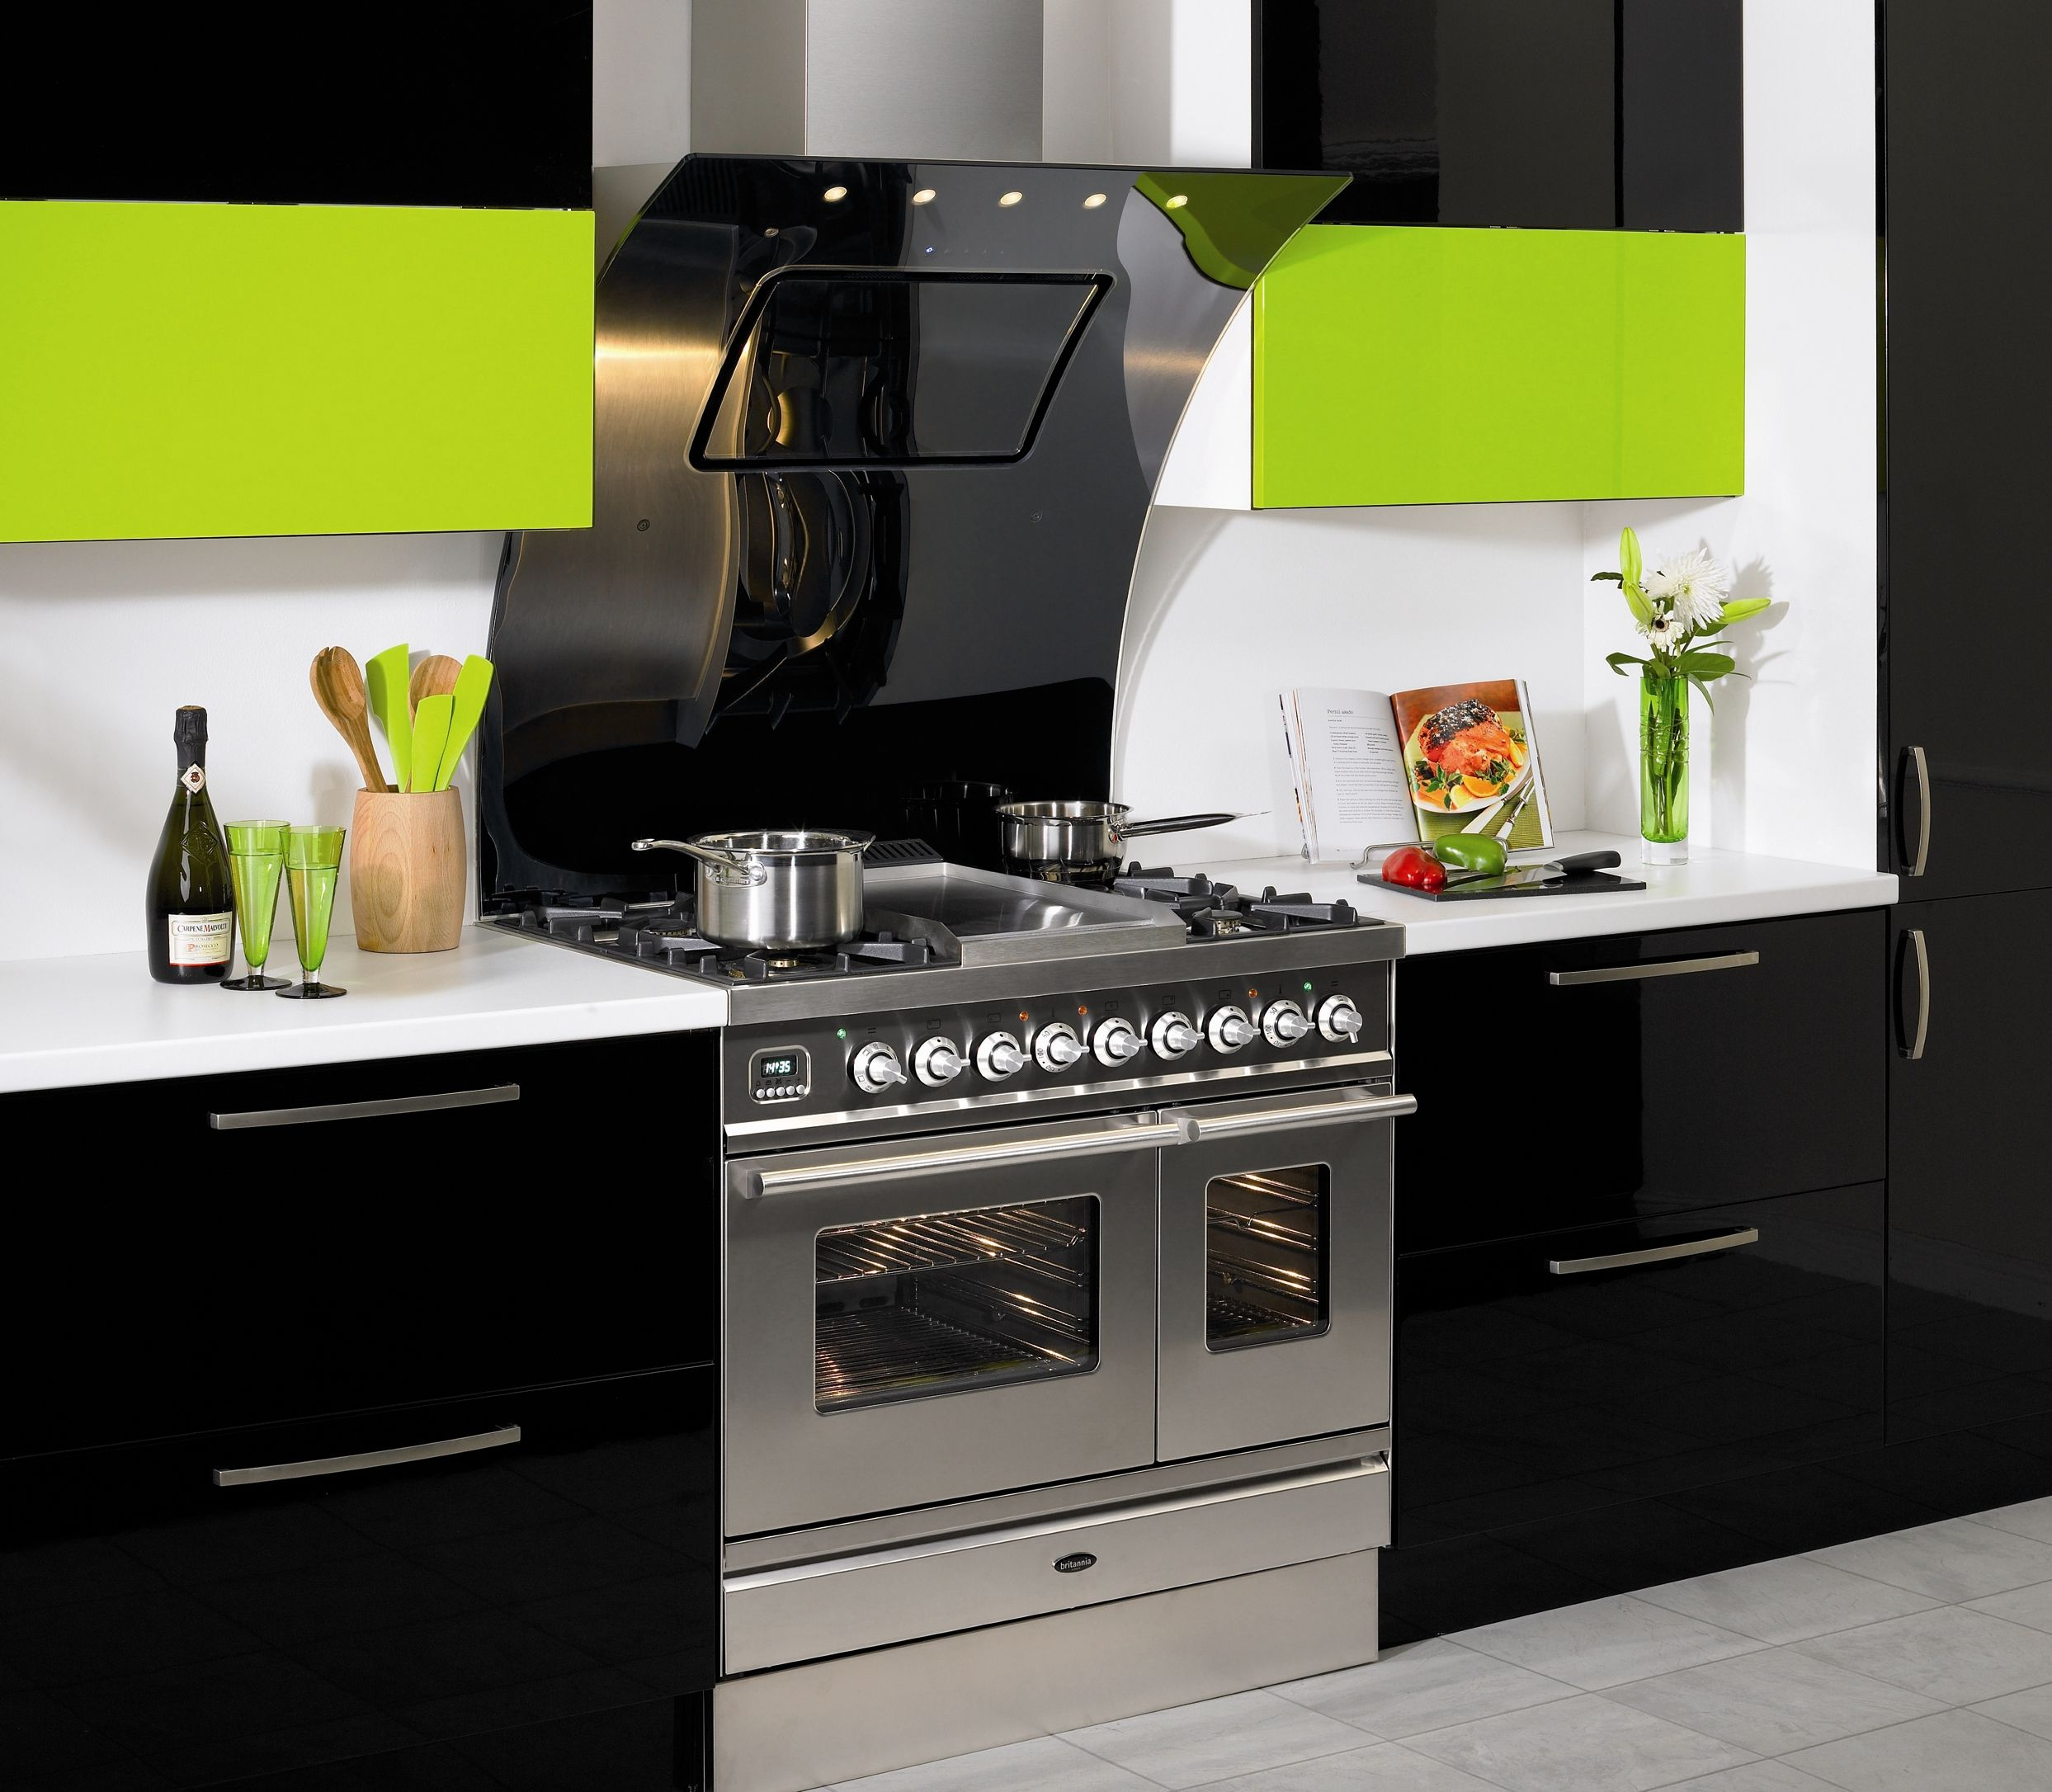 Fabulous Latest Trends In Kitchen Design With Contemporary Built In Hood  And Chic Free Standing Cooker Part 83